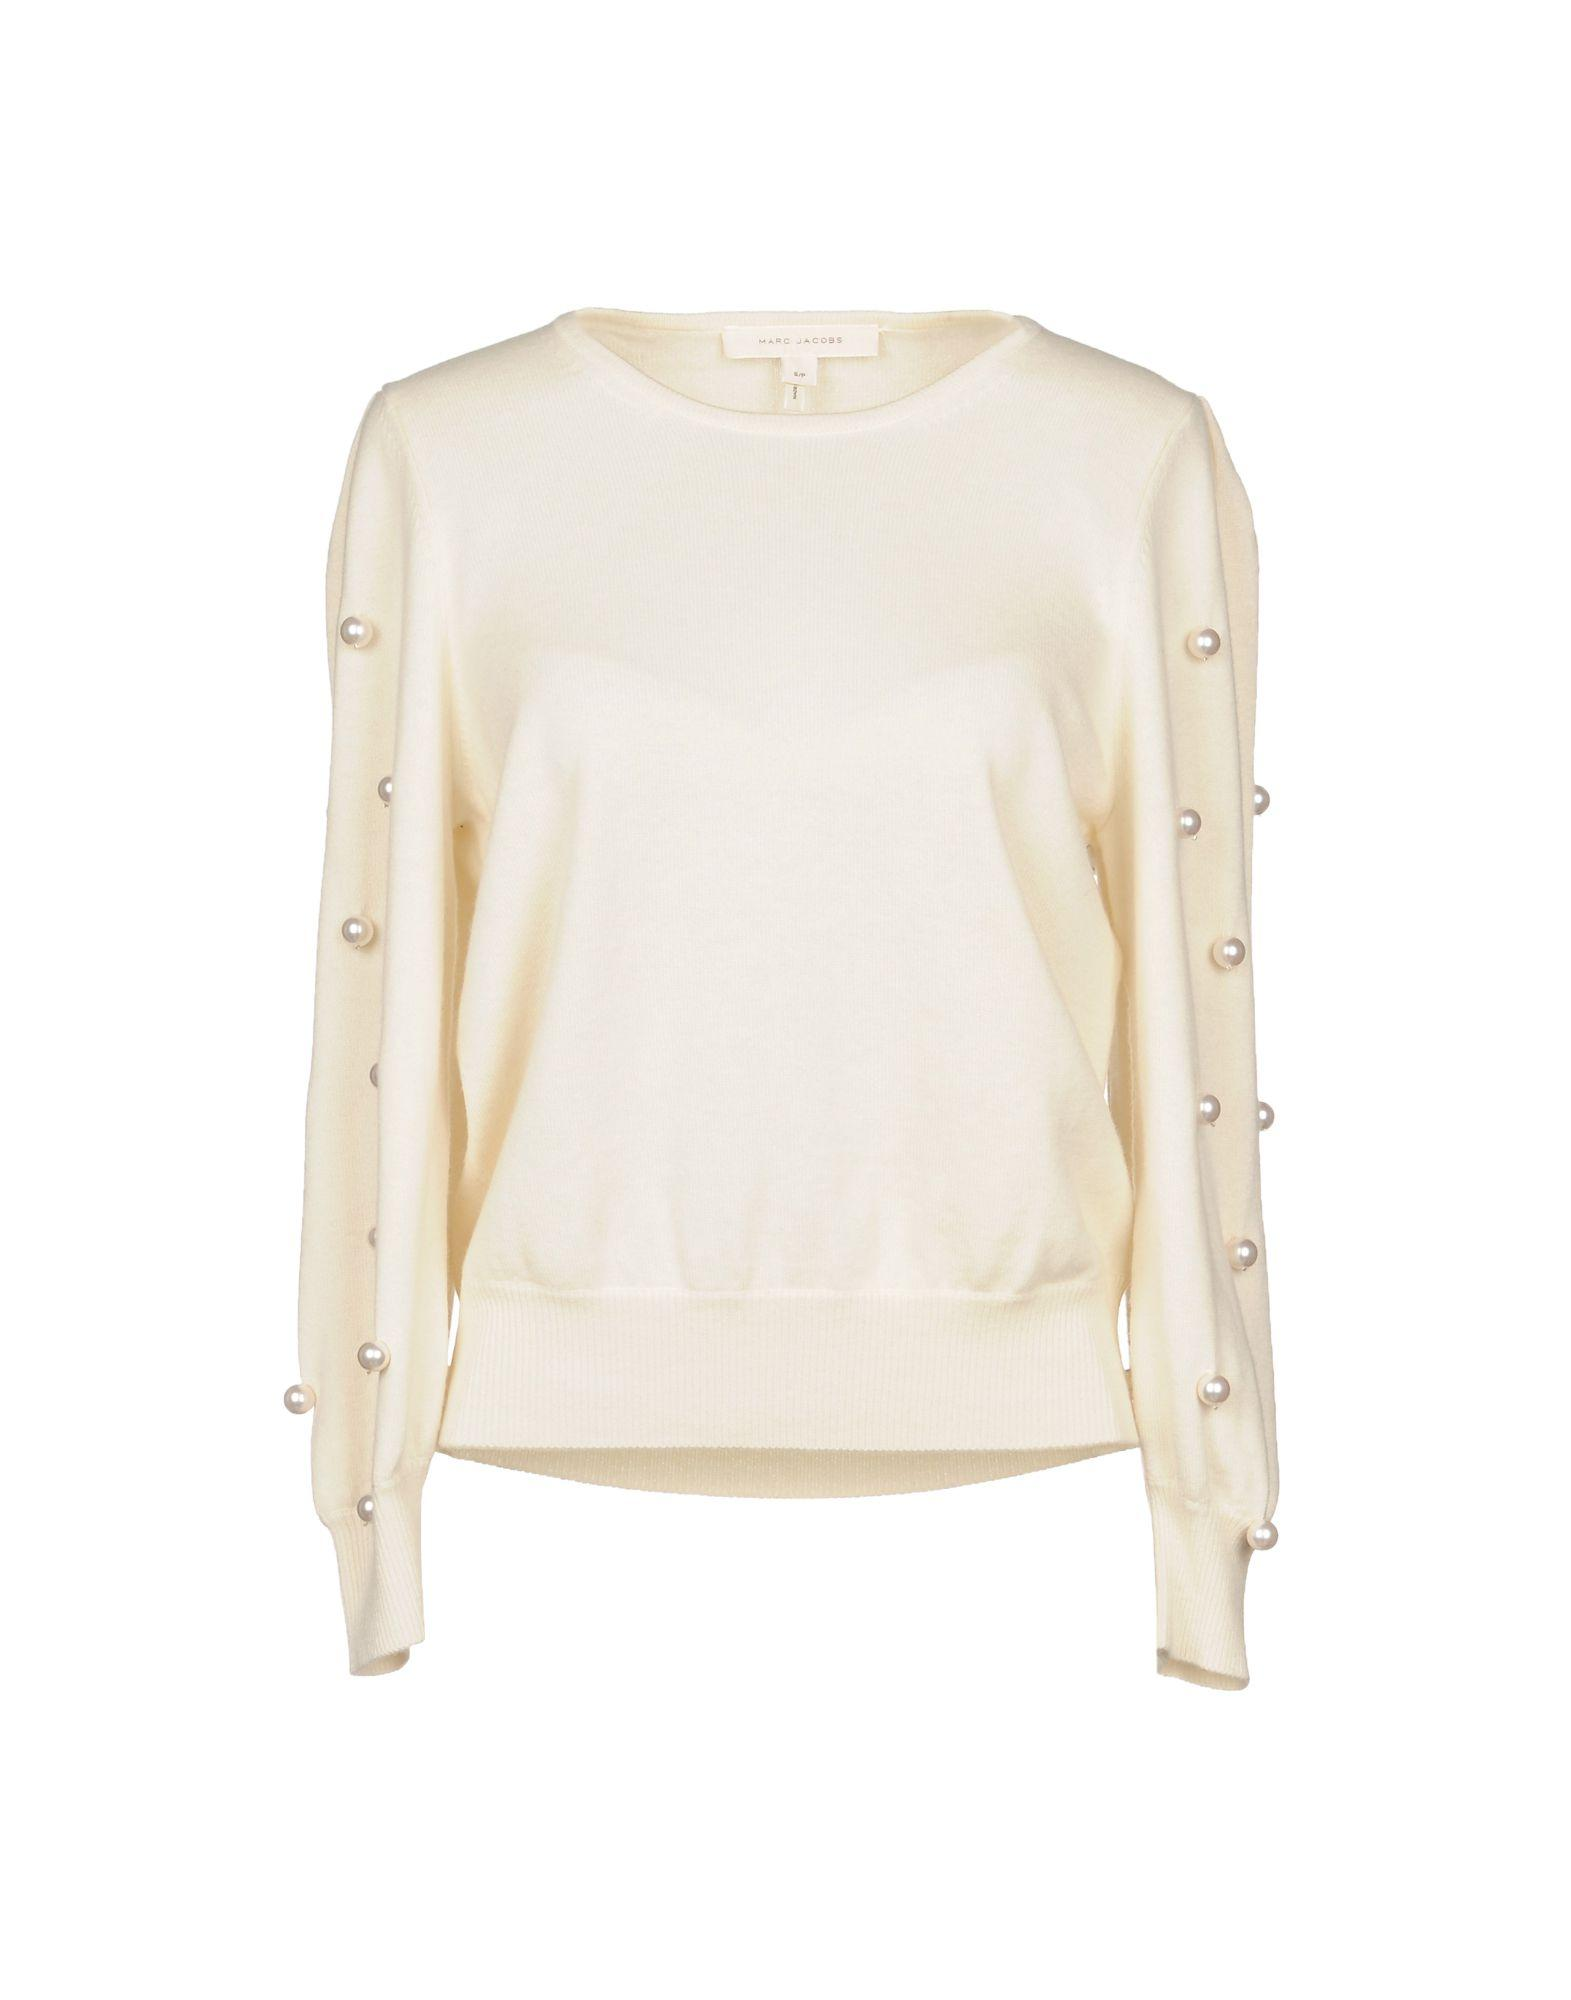 Marc Jacobs Sweaters In White